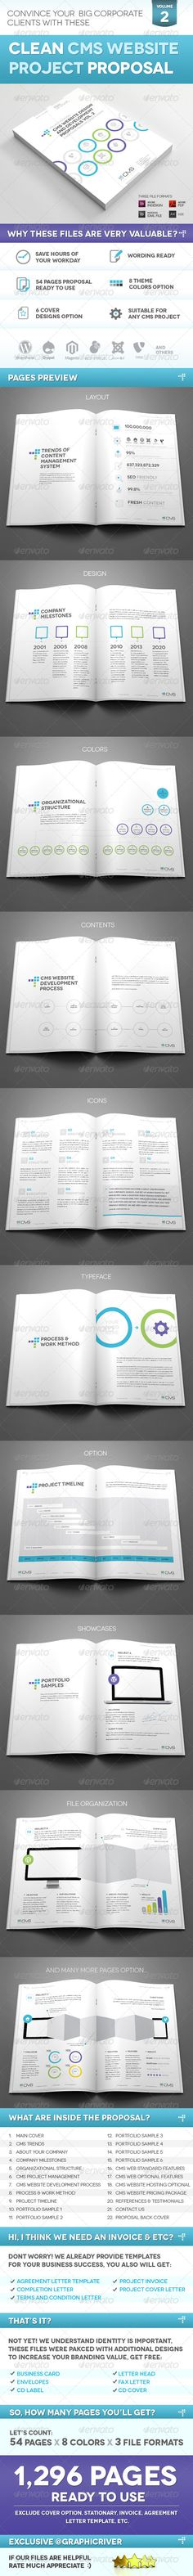 Clean And Professional Cms Website Project Proposal On Behance